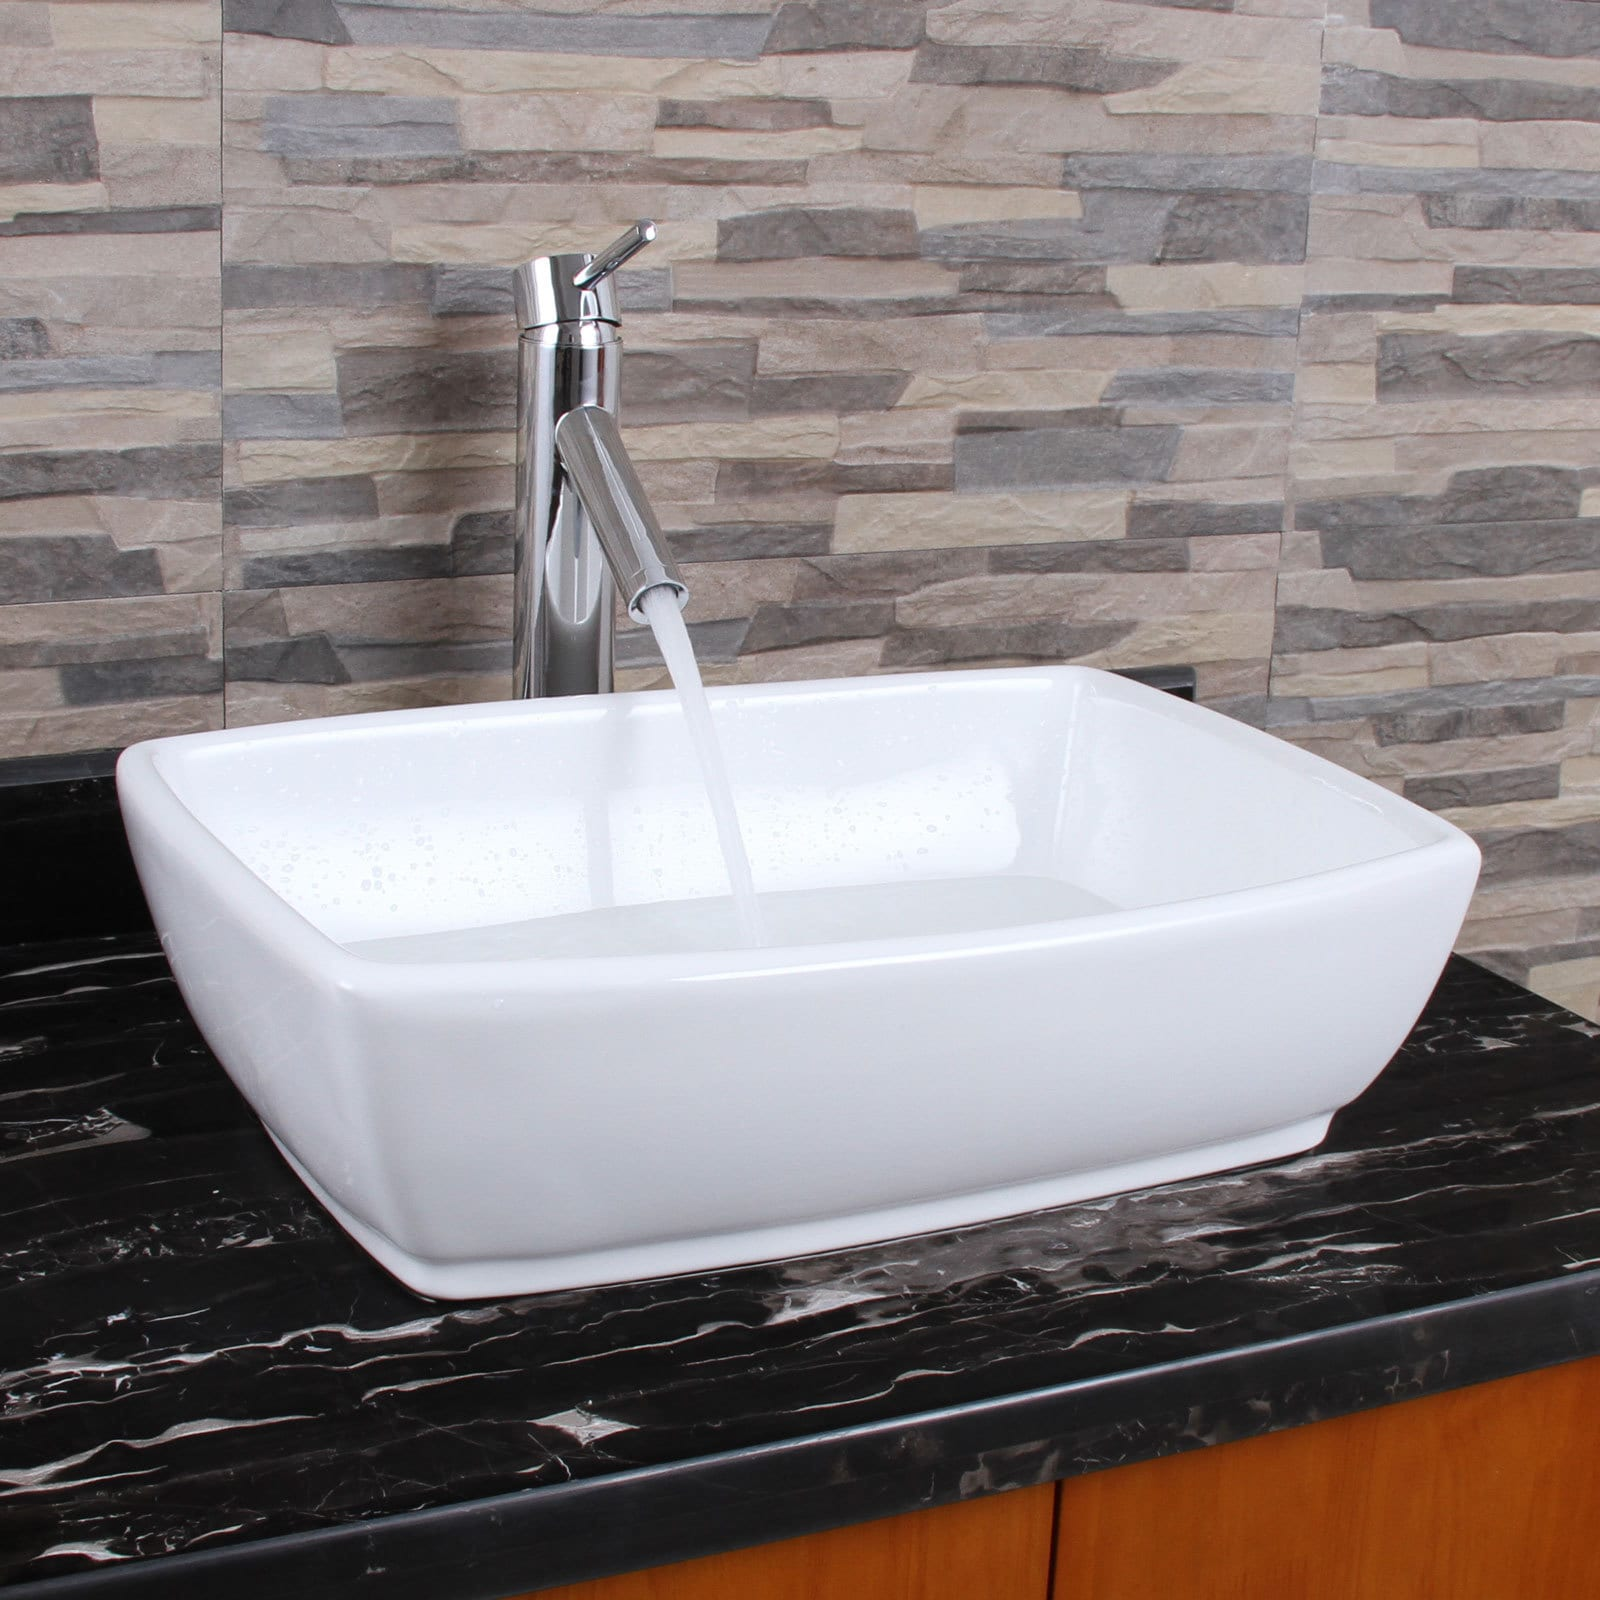 Elimax S Unique Rectangle Shape White Porcelain Bathroom Vessel Sink With Faucet Combo Free Shipping Today 12318089